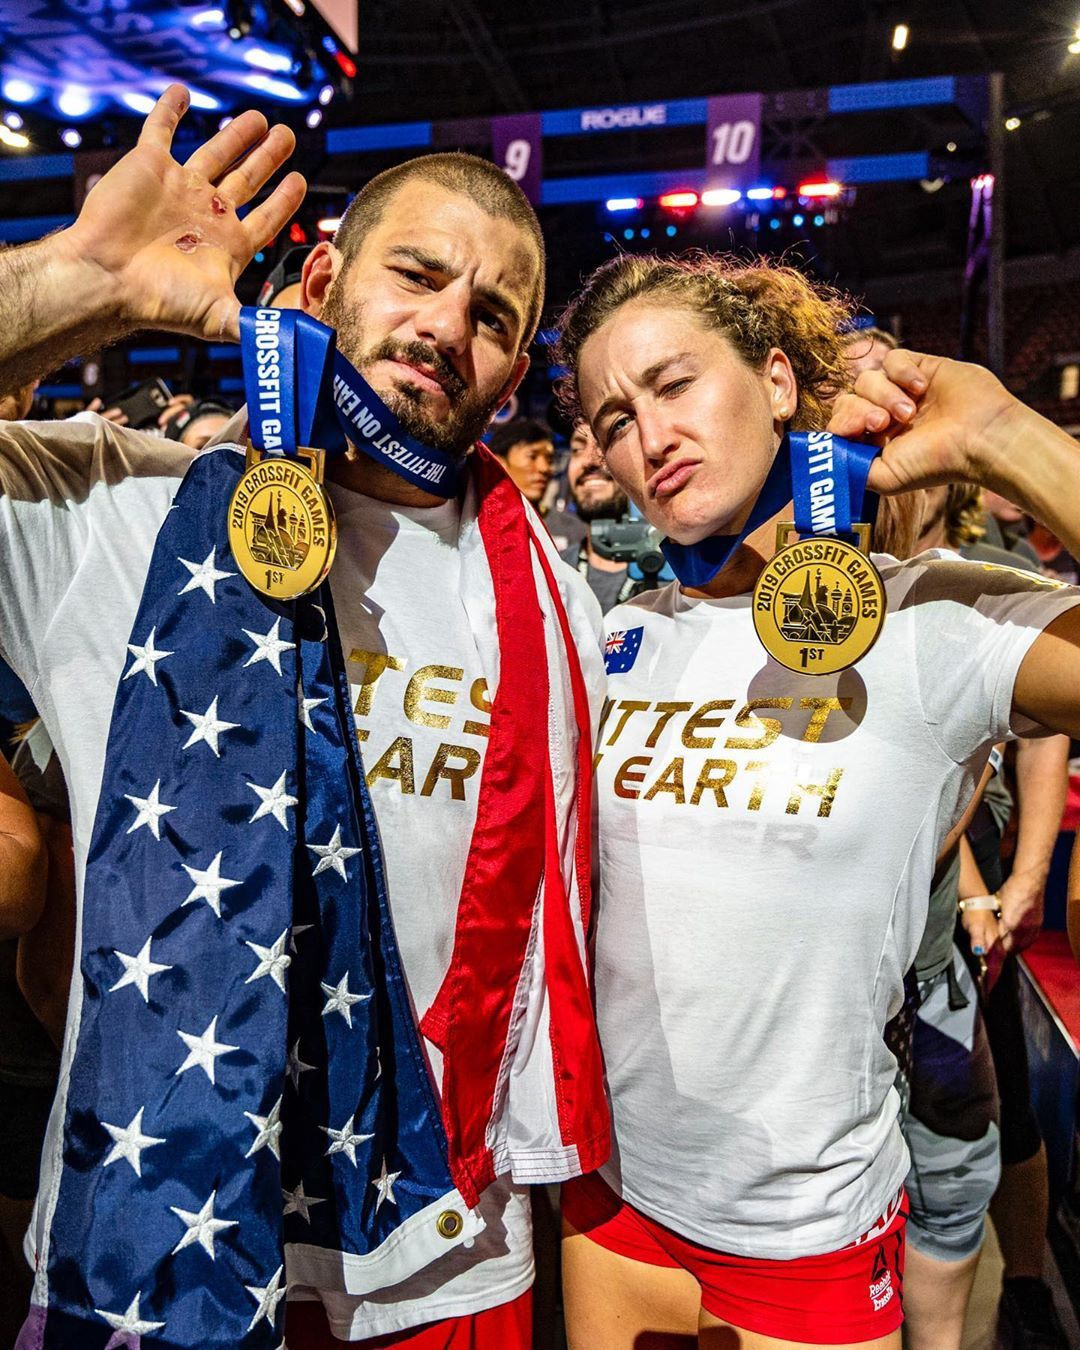 CrossFit Games winners, Mat Fraser and Tia-Clair Toomey